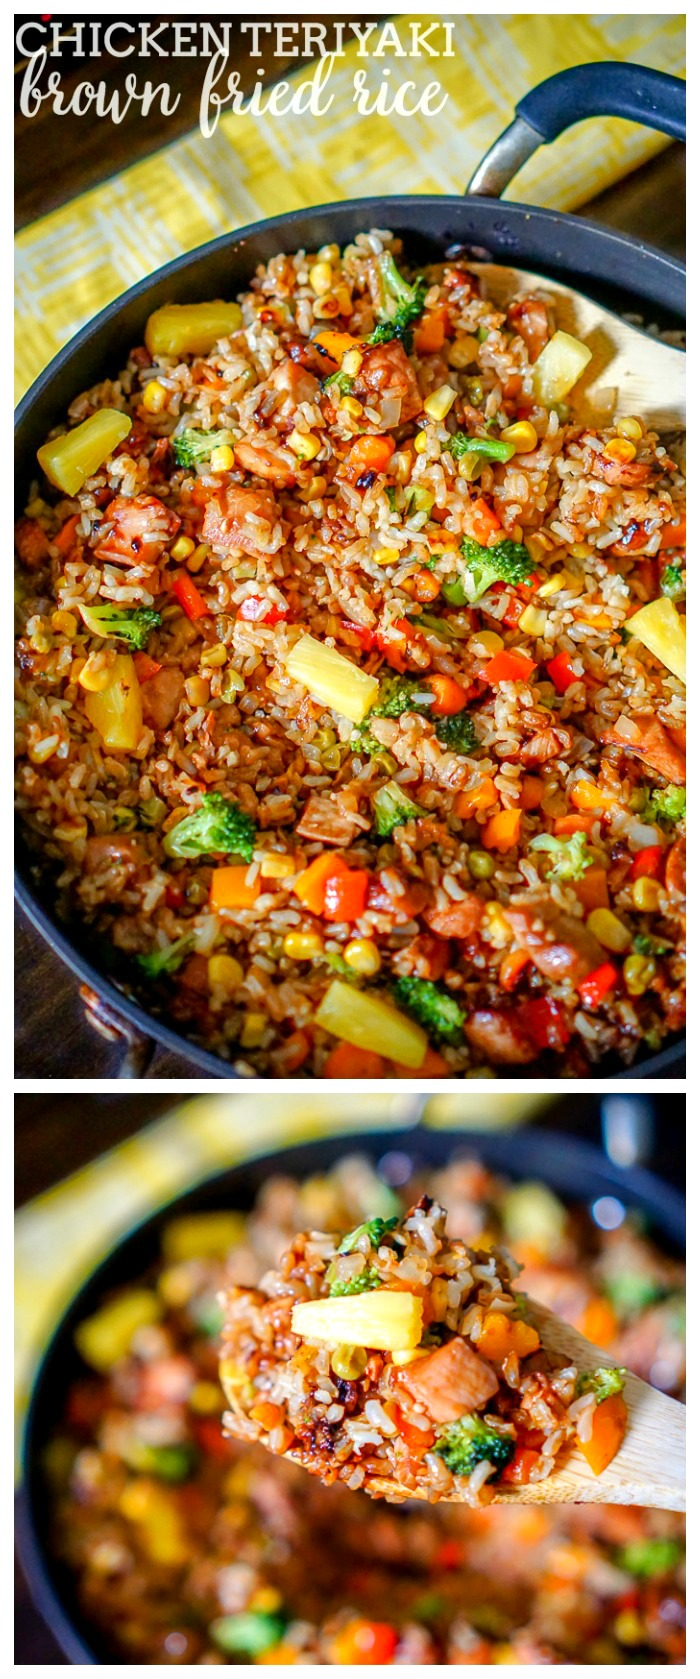 Chicken Teriyaki Brown Fried Rice - This one pot meal is filled with lots of of veggies and makes a delicious easy dinner idea! | The Love Nerds AD MealsWithMinute